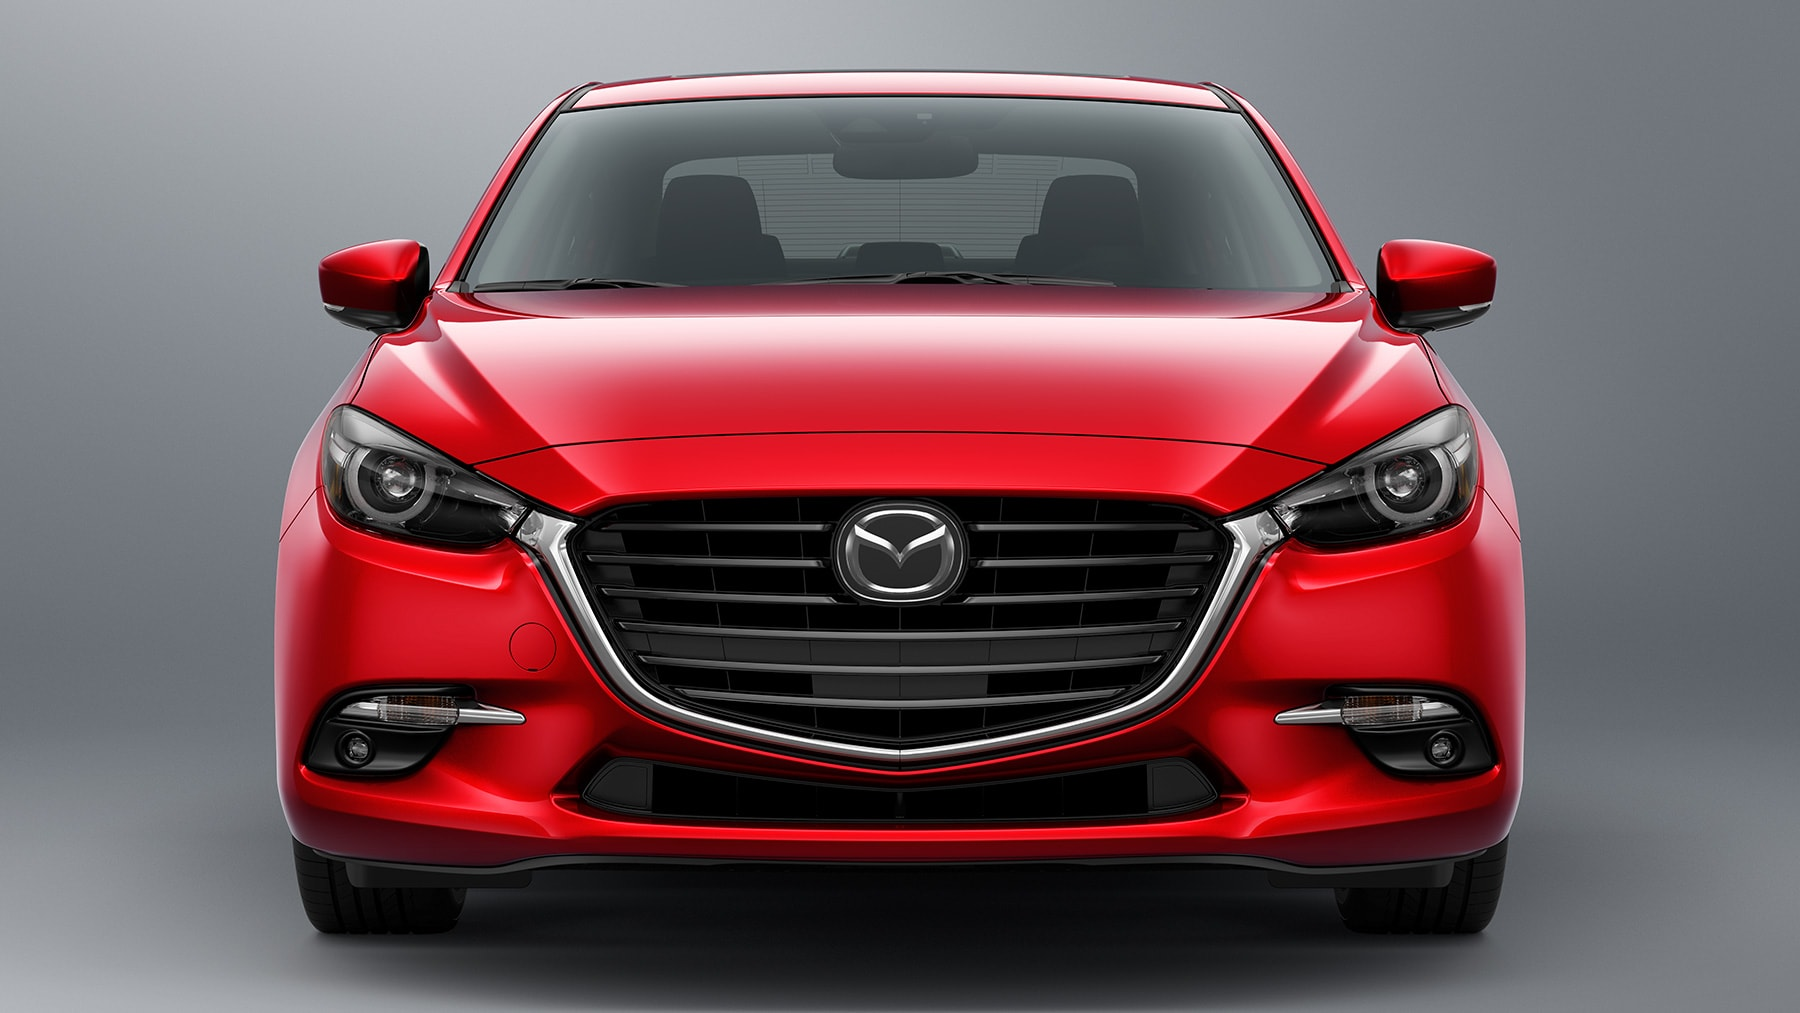 Mazda 3 Owners Manual: Fuel and Emission